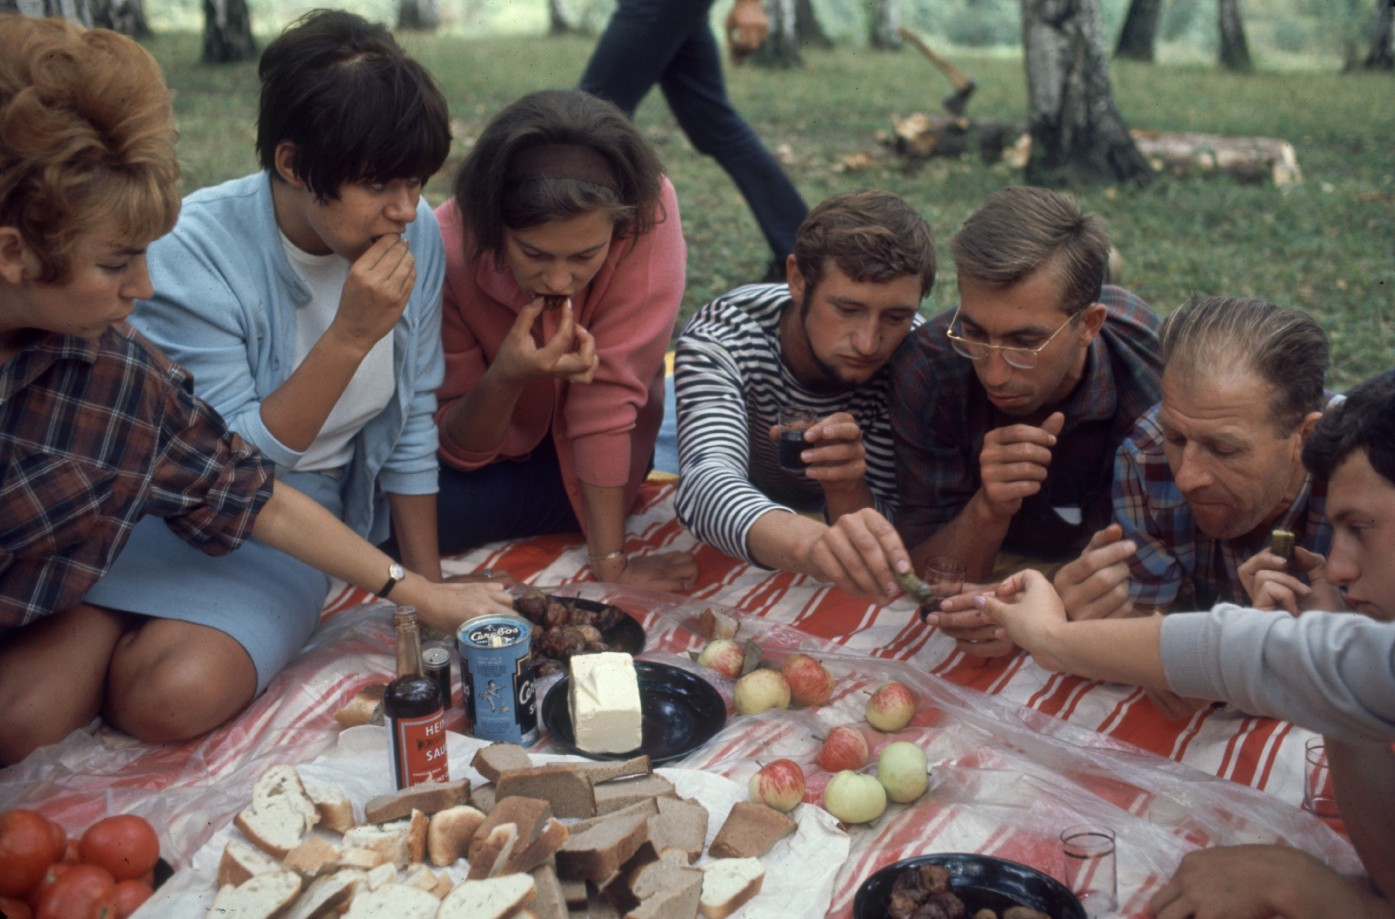 A group of Soviet Metallurgical Institute students enjoy a picnic in a park near Moscow, Russia, August 1968. Bill Eppridge